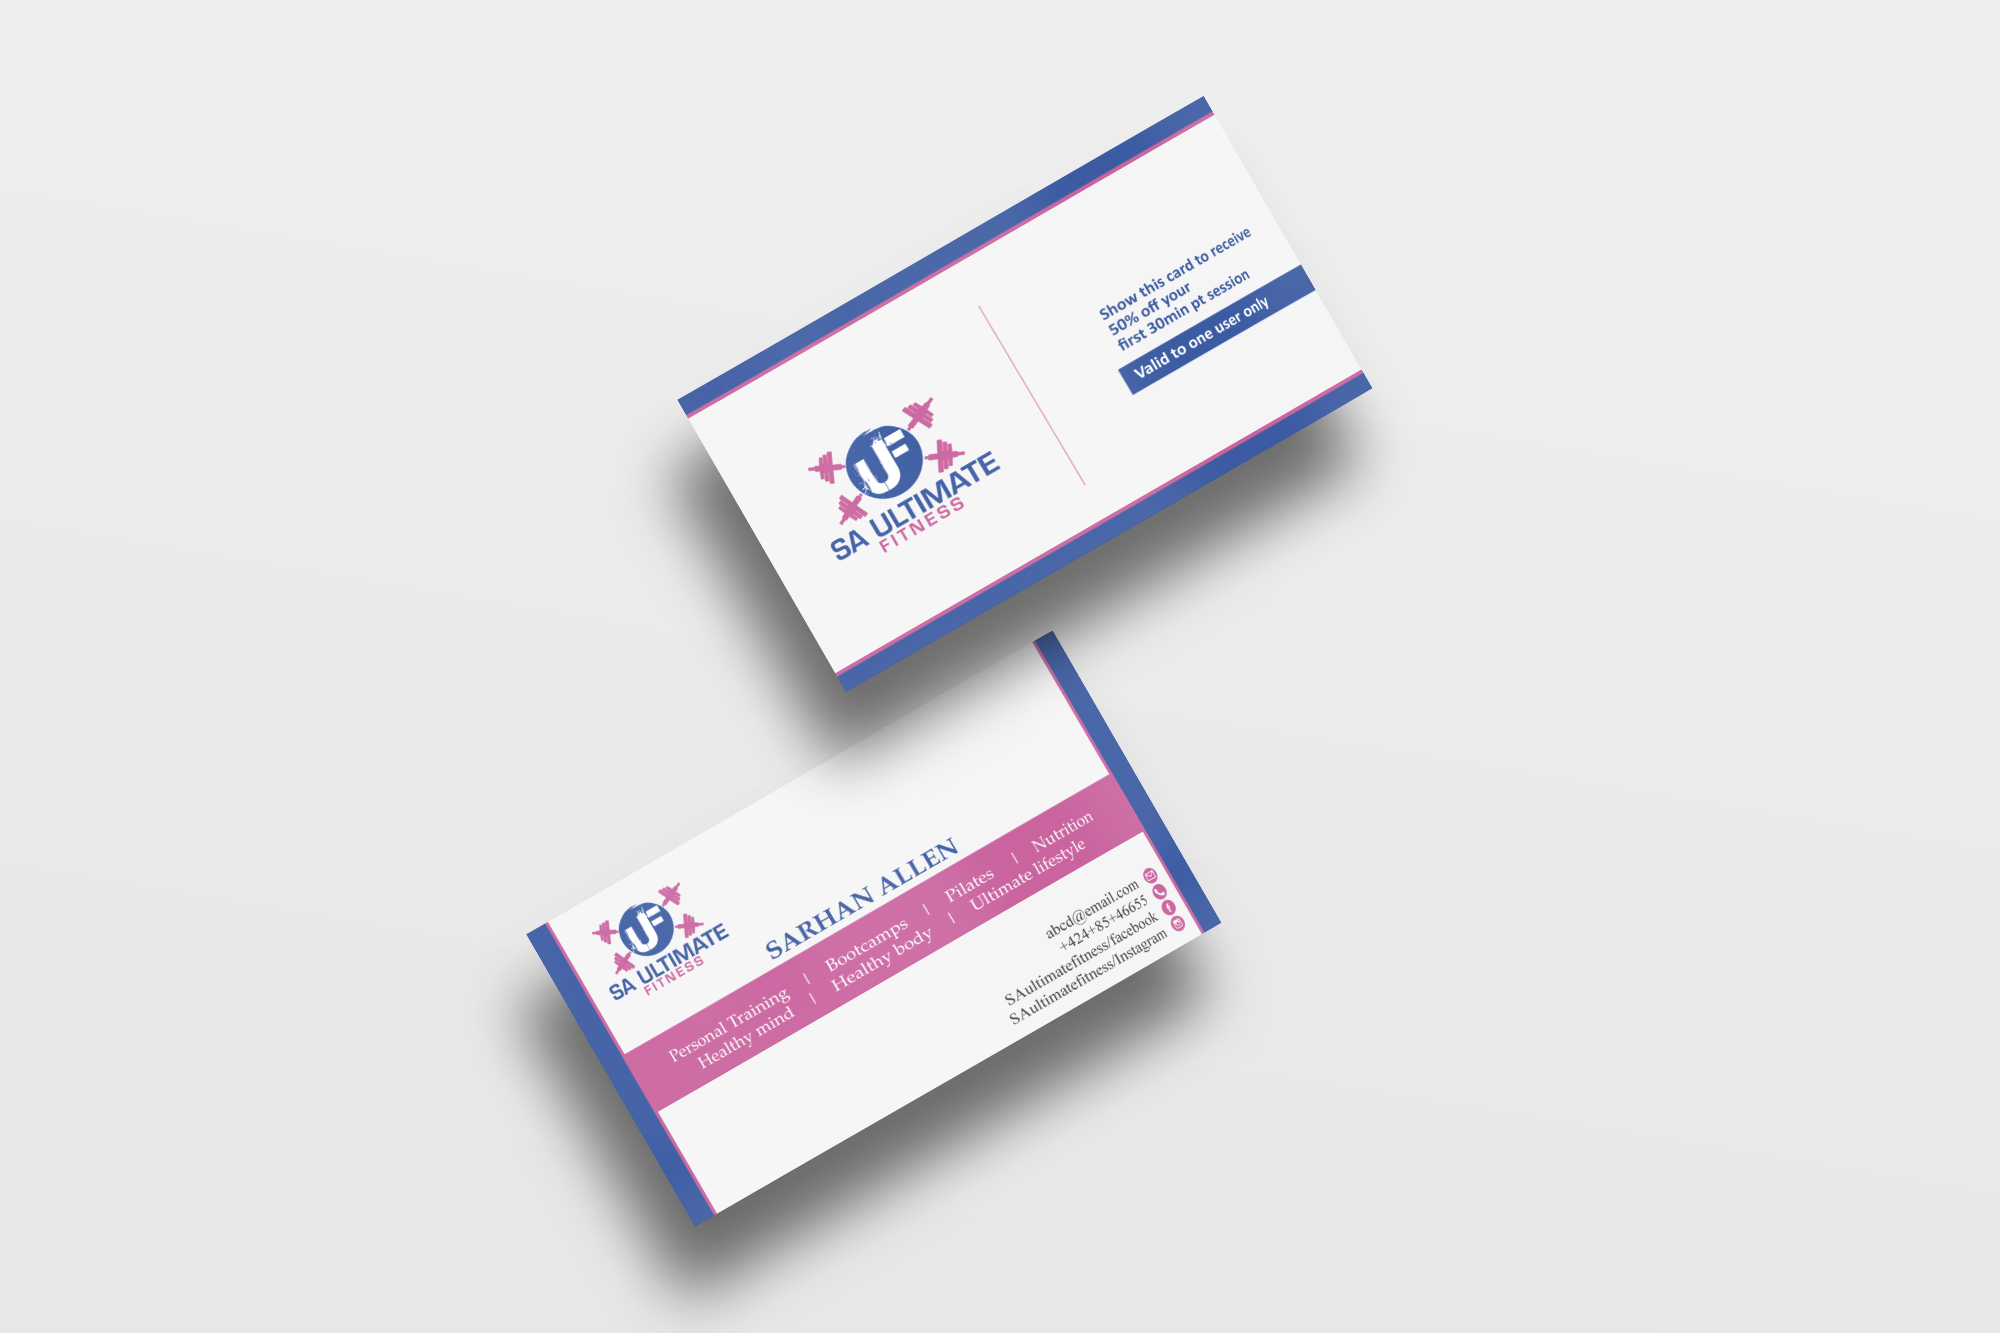 Business Card Design By Gomedia For Sa Ultimate Fitness Personal Training Needs A New